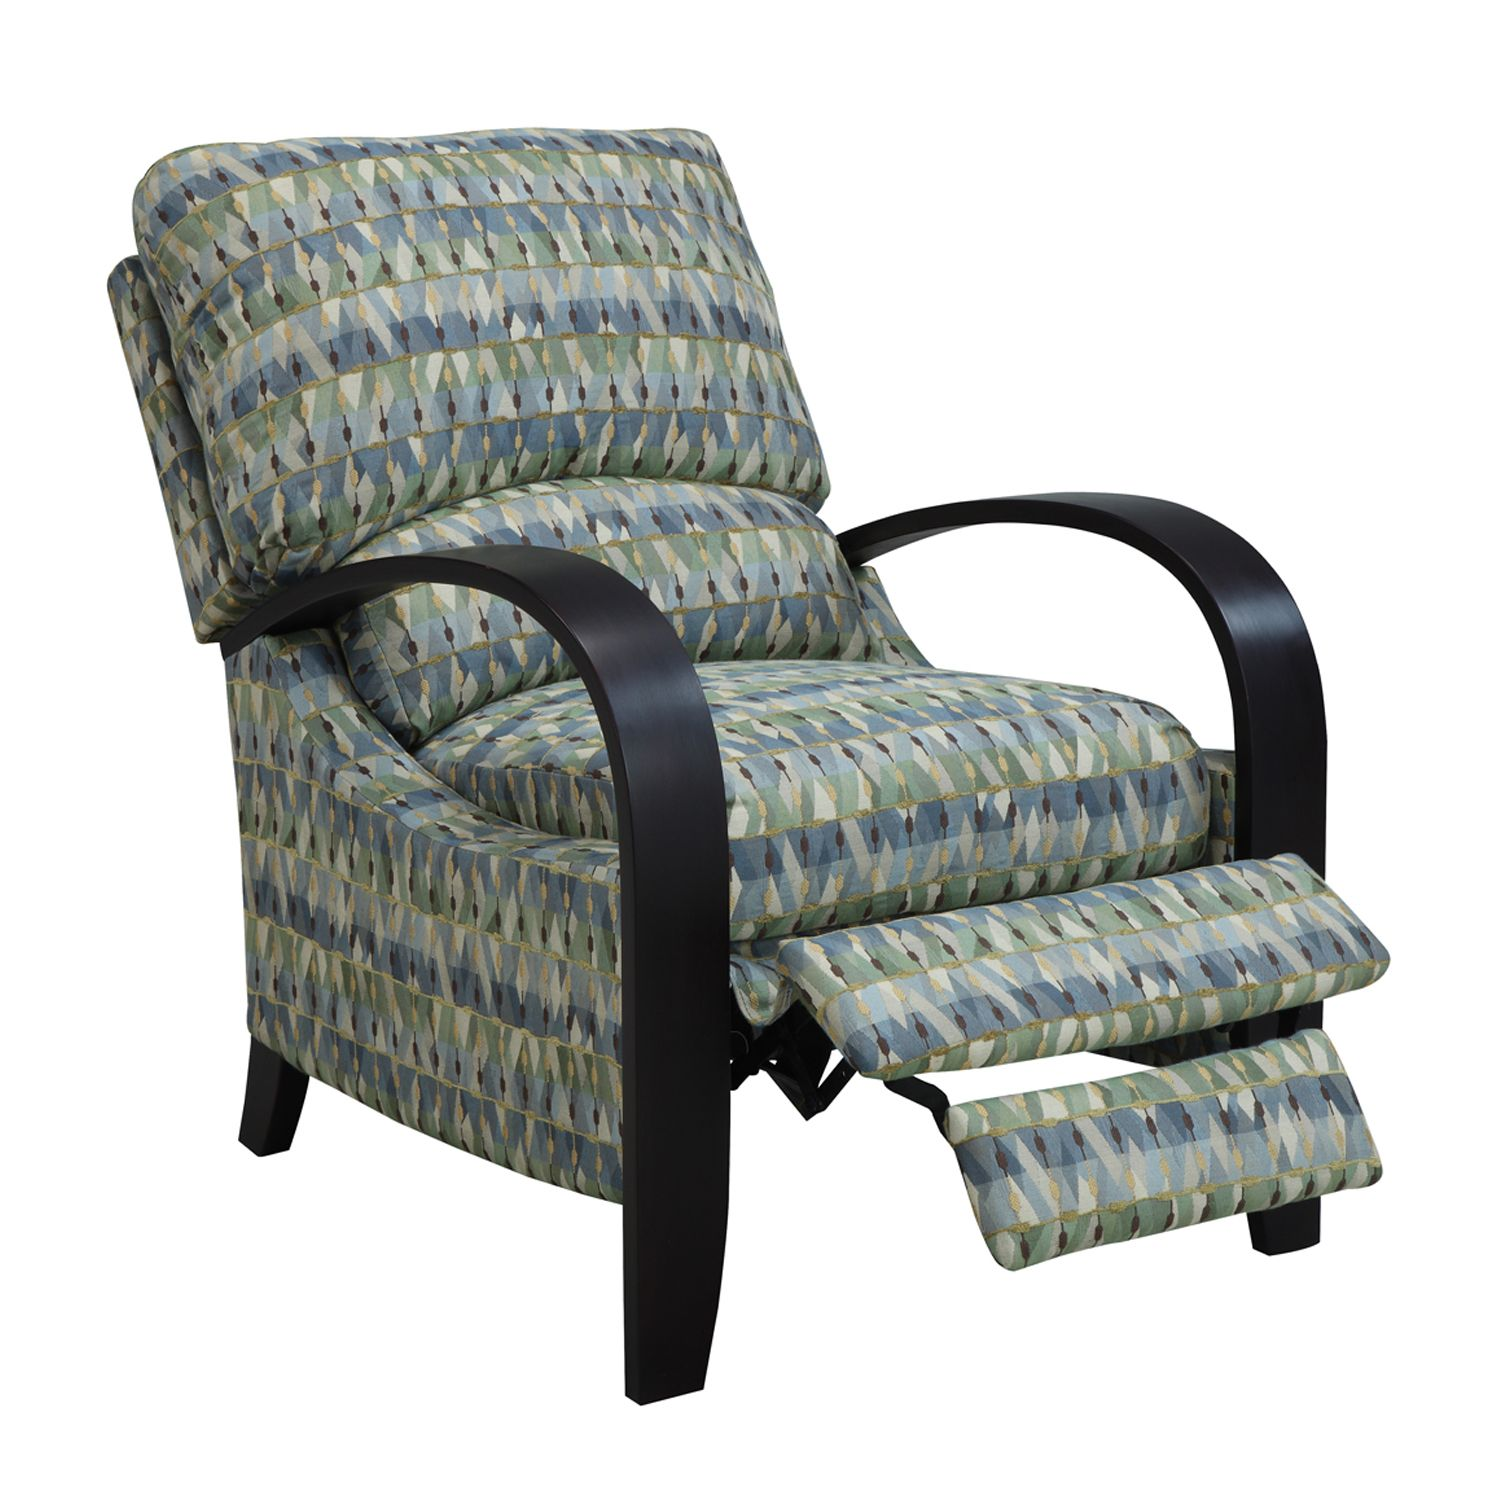 com video madlonsbigbear photos photo chairs massage and ergonomic lounge patio chair kohls